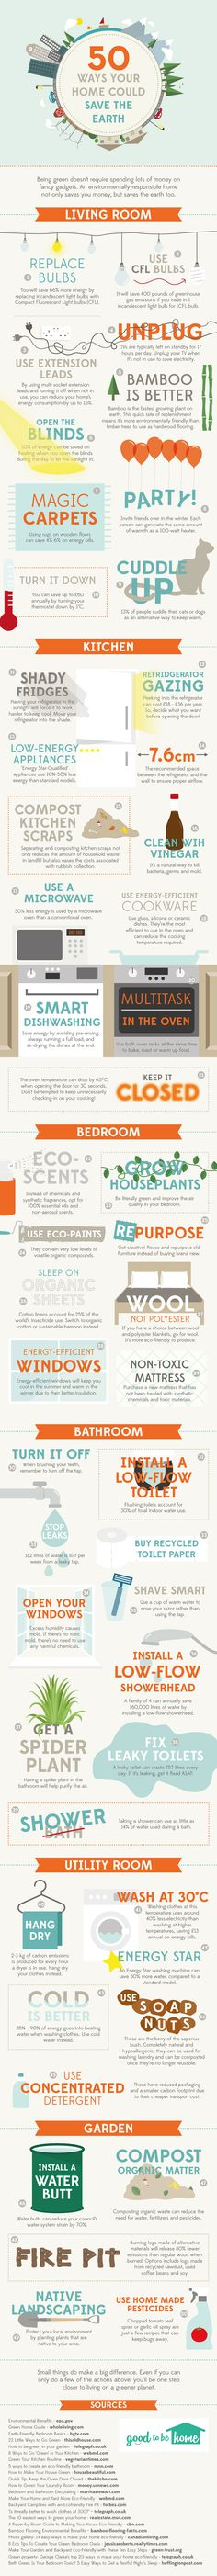 50 Ways your Home can Save the Earth   #infographic #Environment #Home